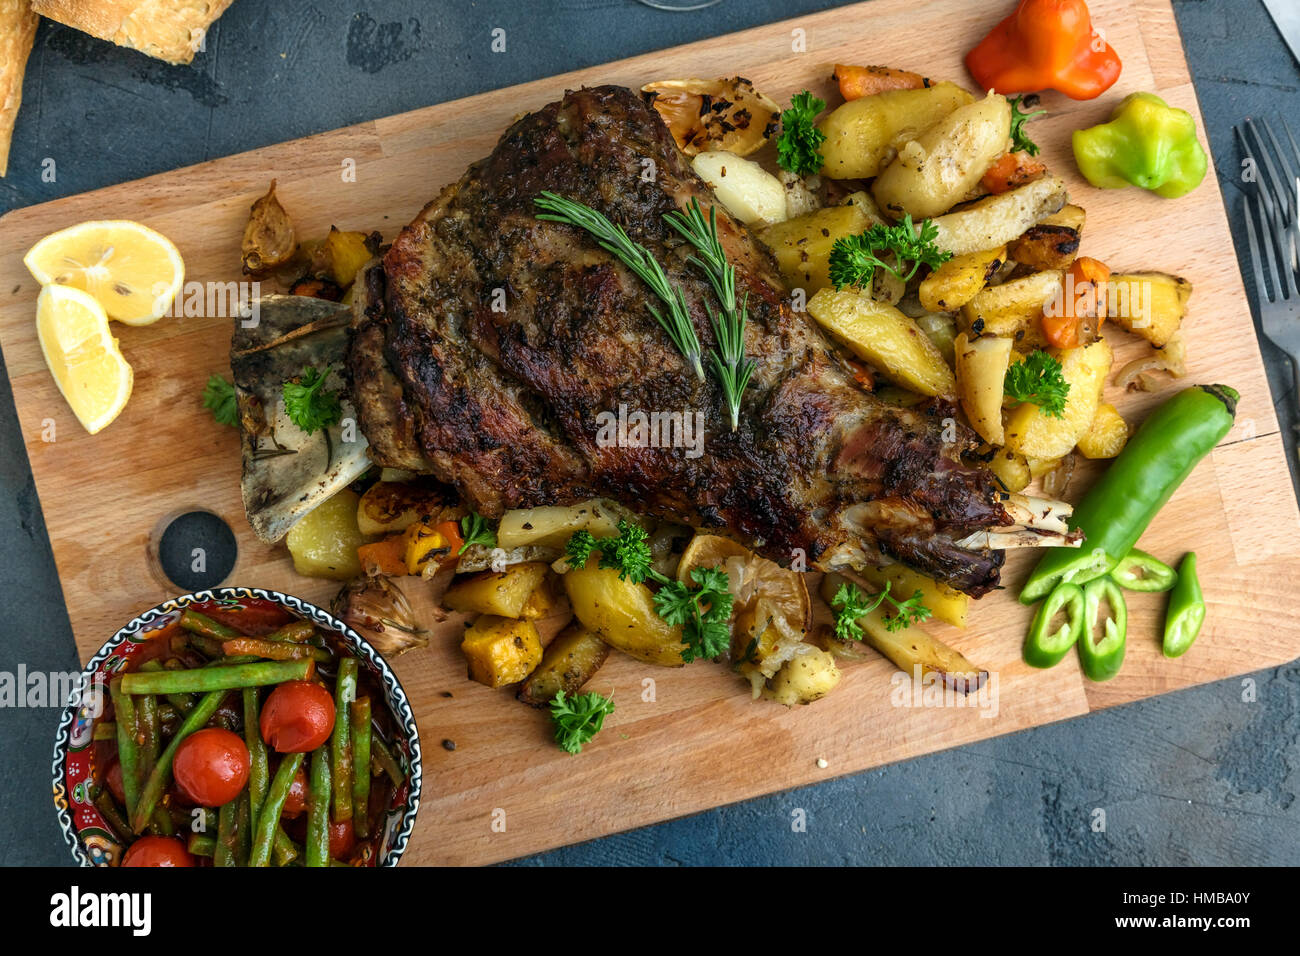 Roast shoulder of lamb on baked potato and carrots, wooden board, top view - Stock Image